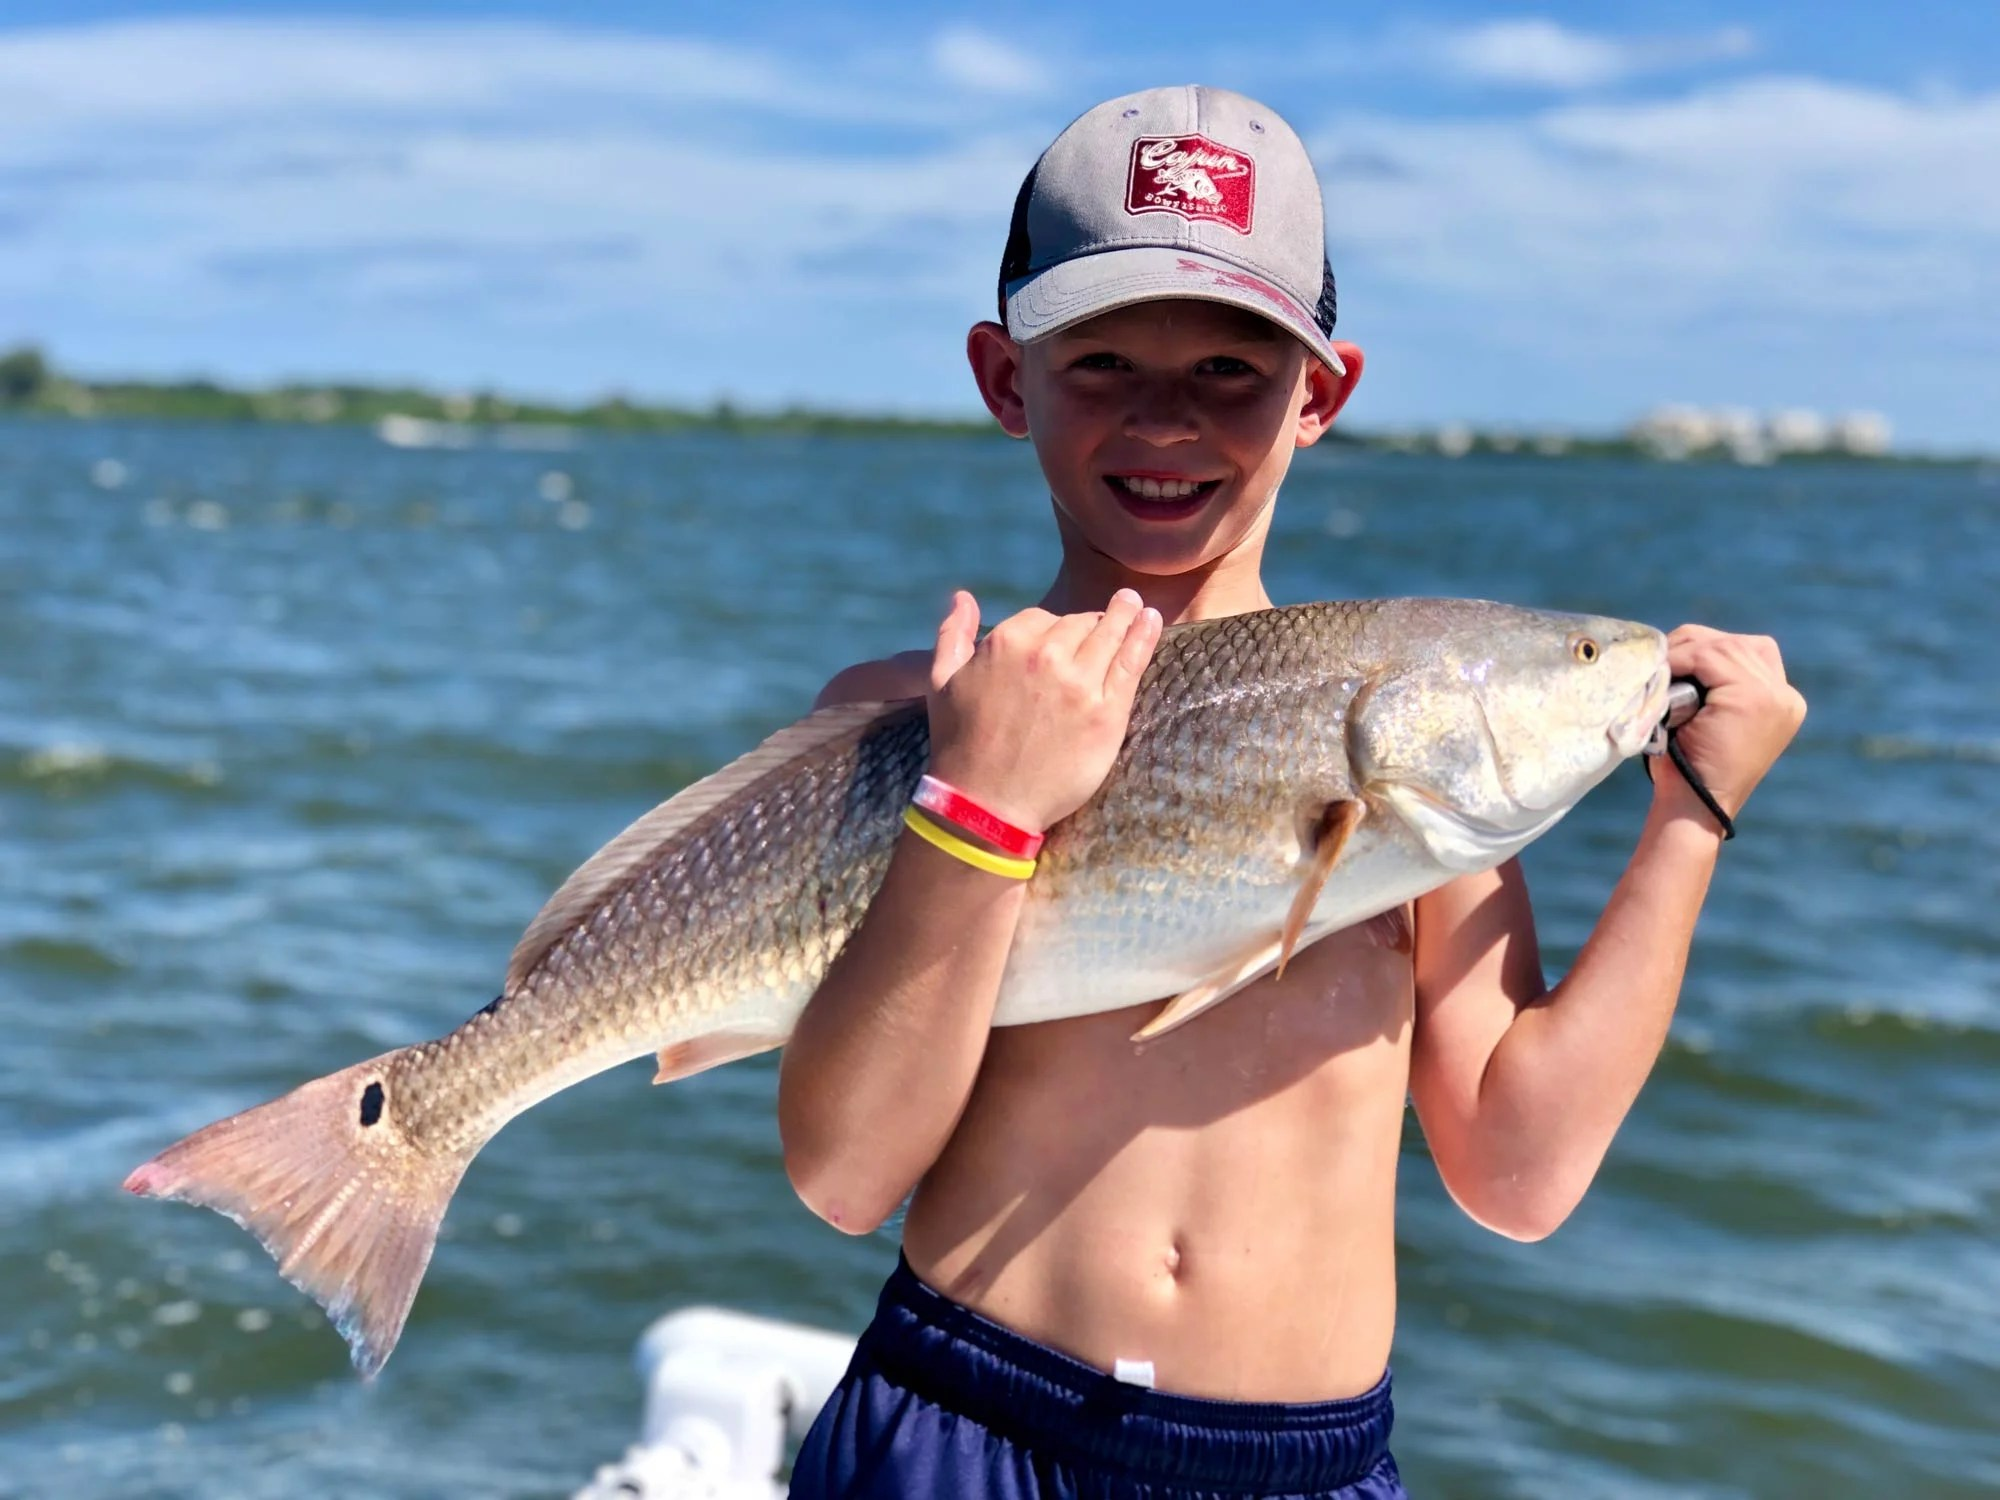 A smiling young angler holding a Redfish on a boat